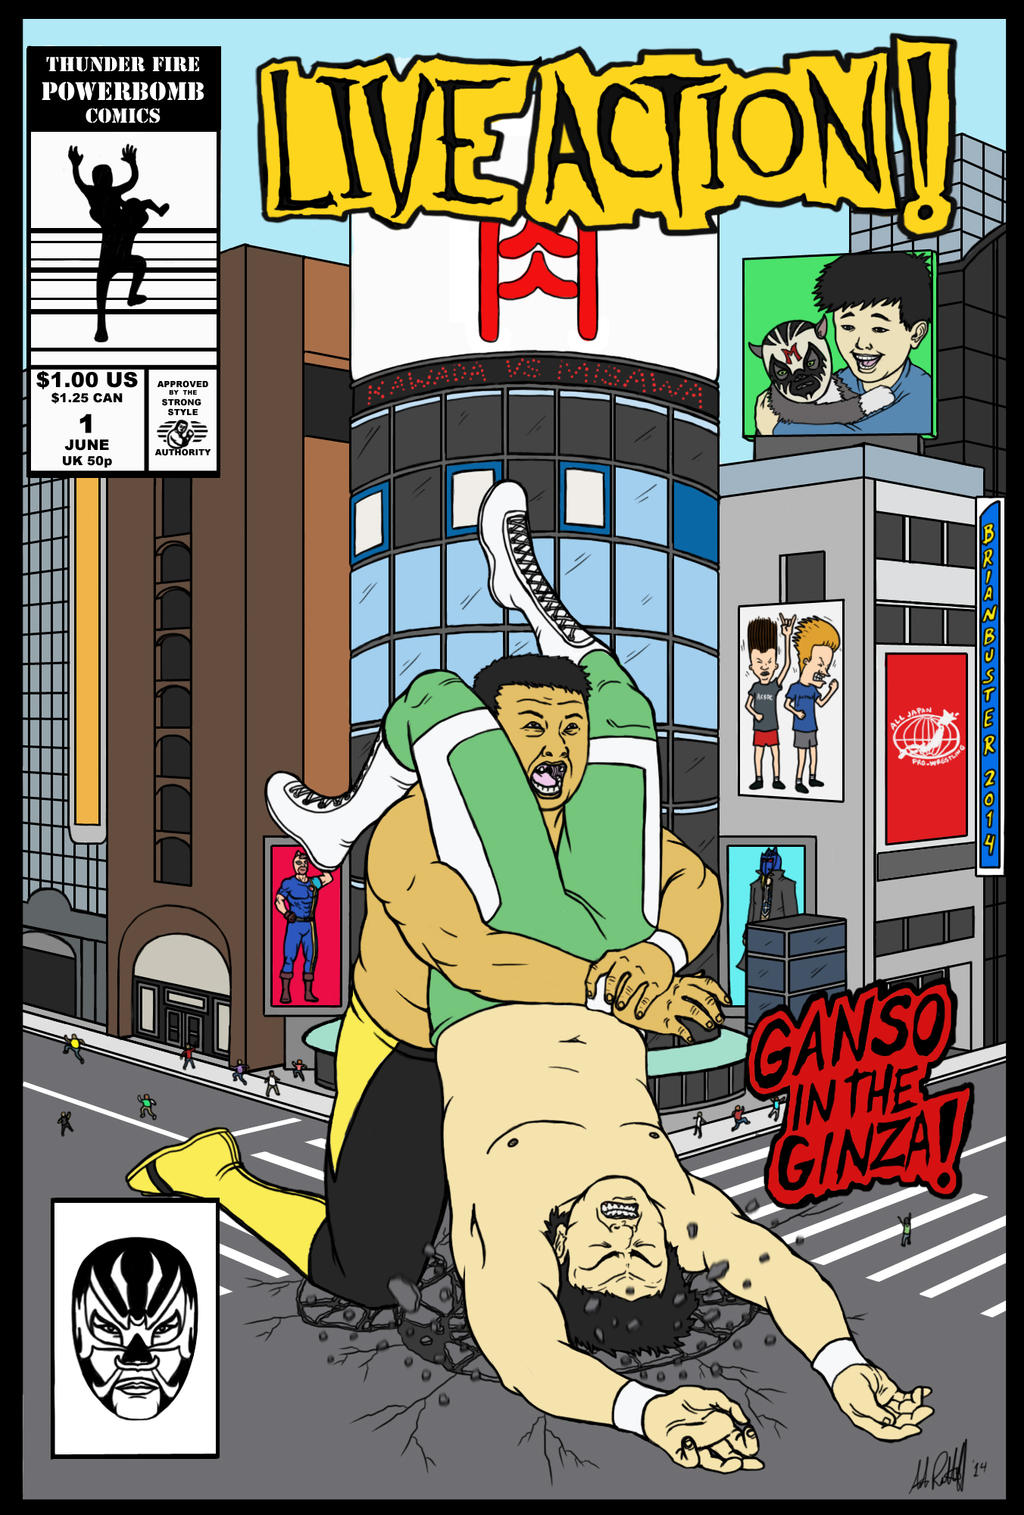 ganso_in_the_ginza_by_brianbuster-d7ko92